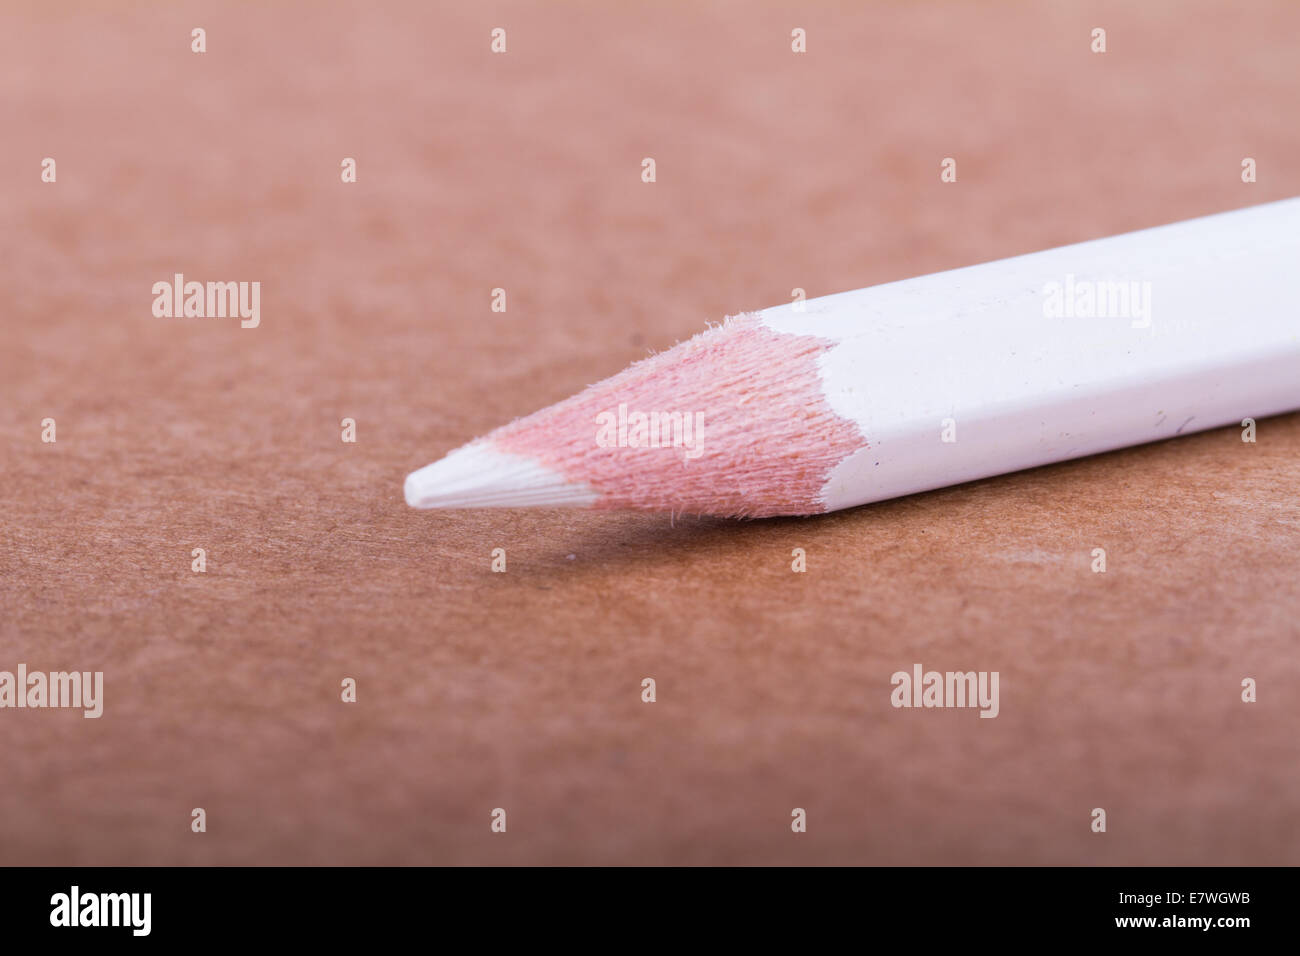 Crayon blanc sur fond texturé. Photo Stock